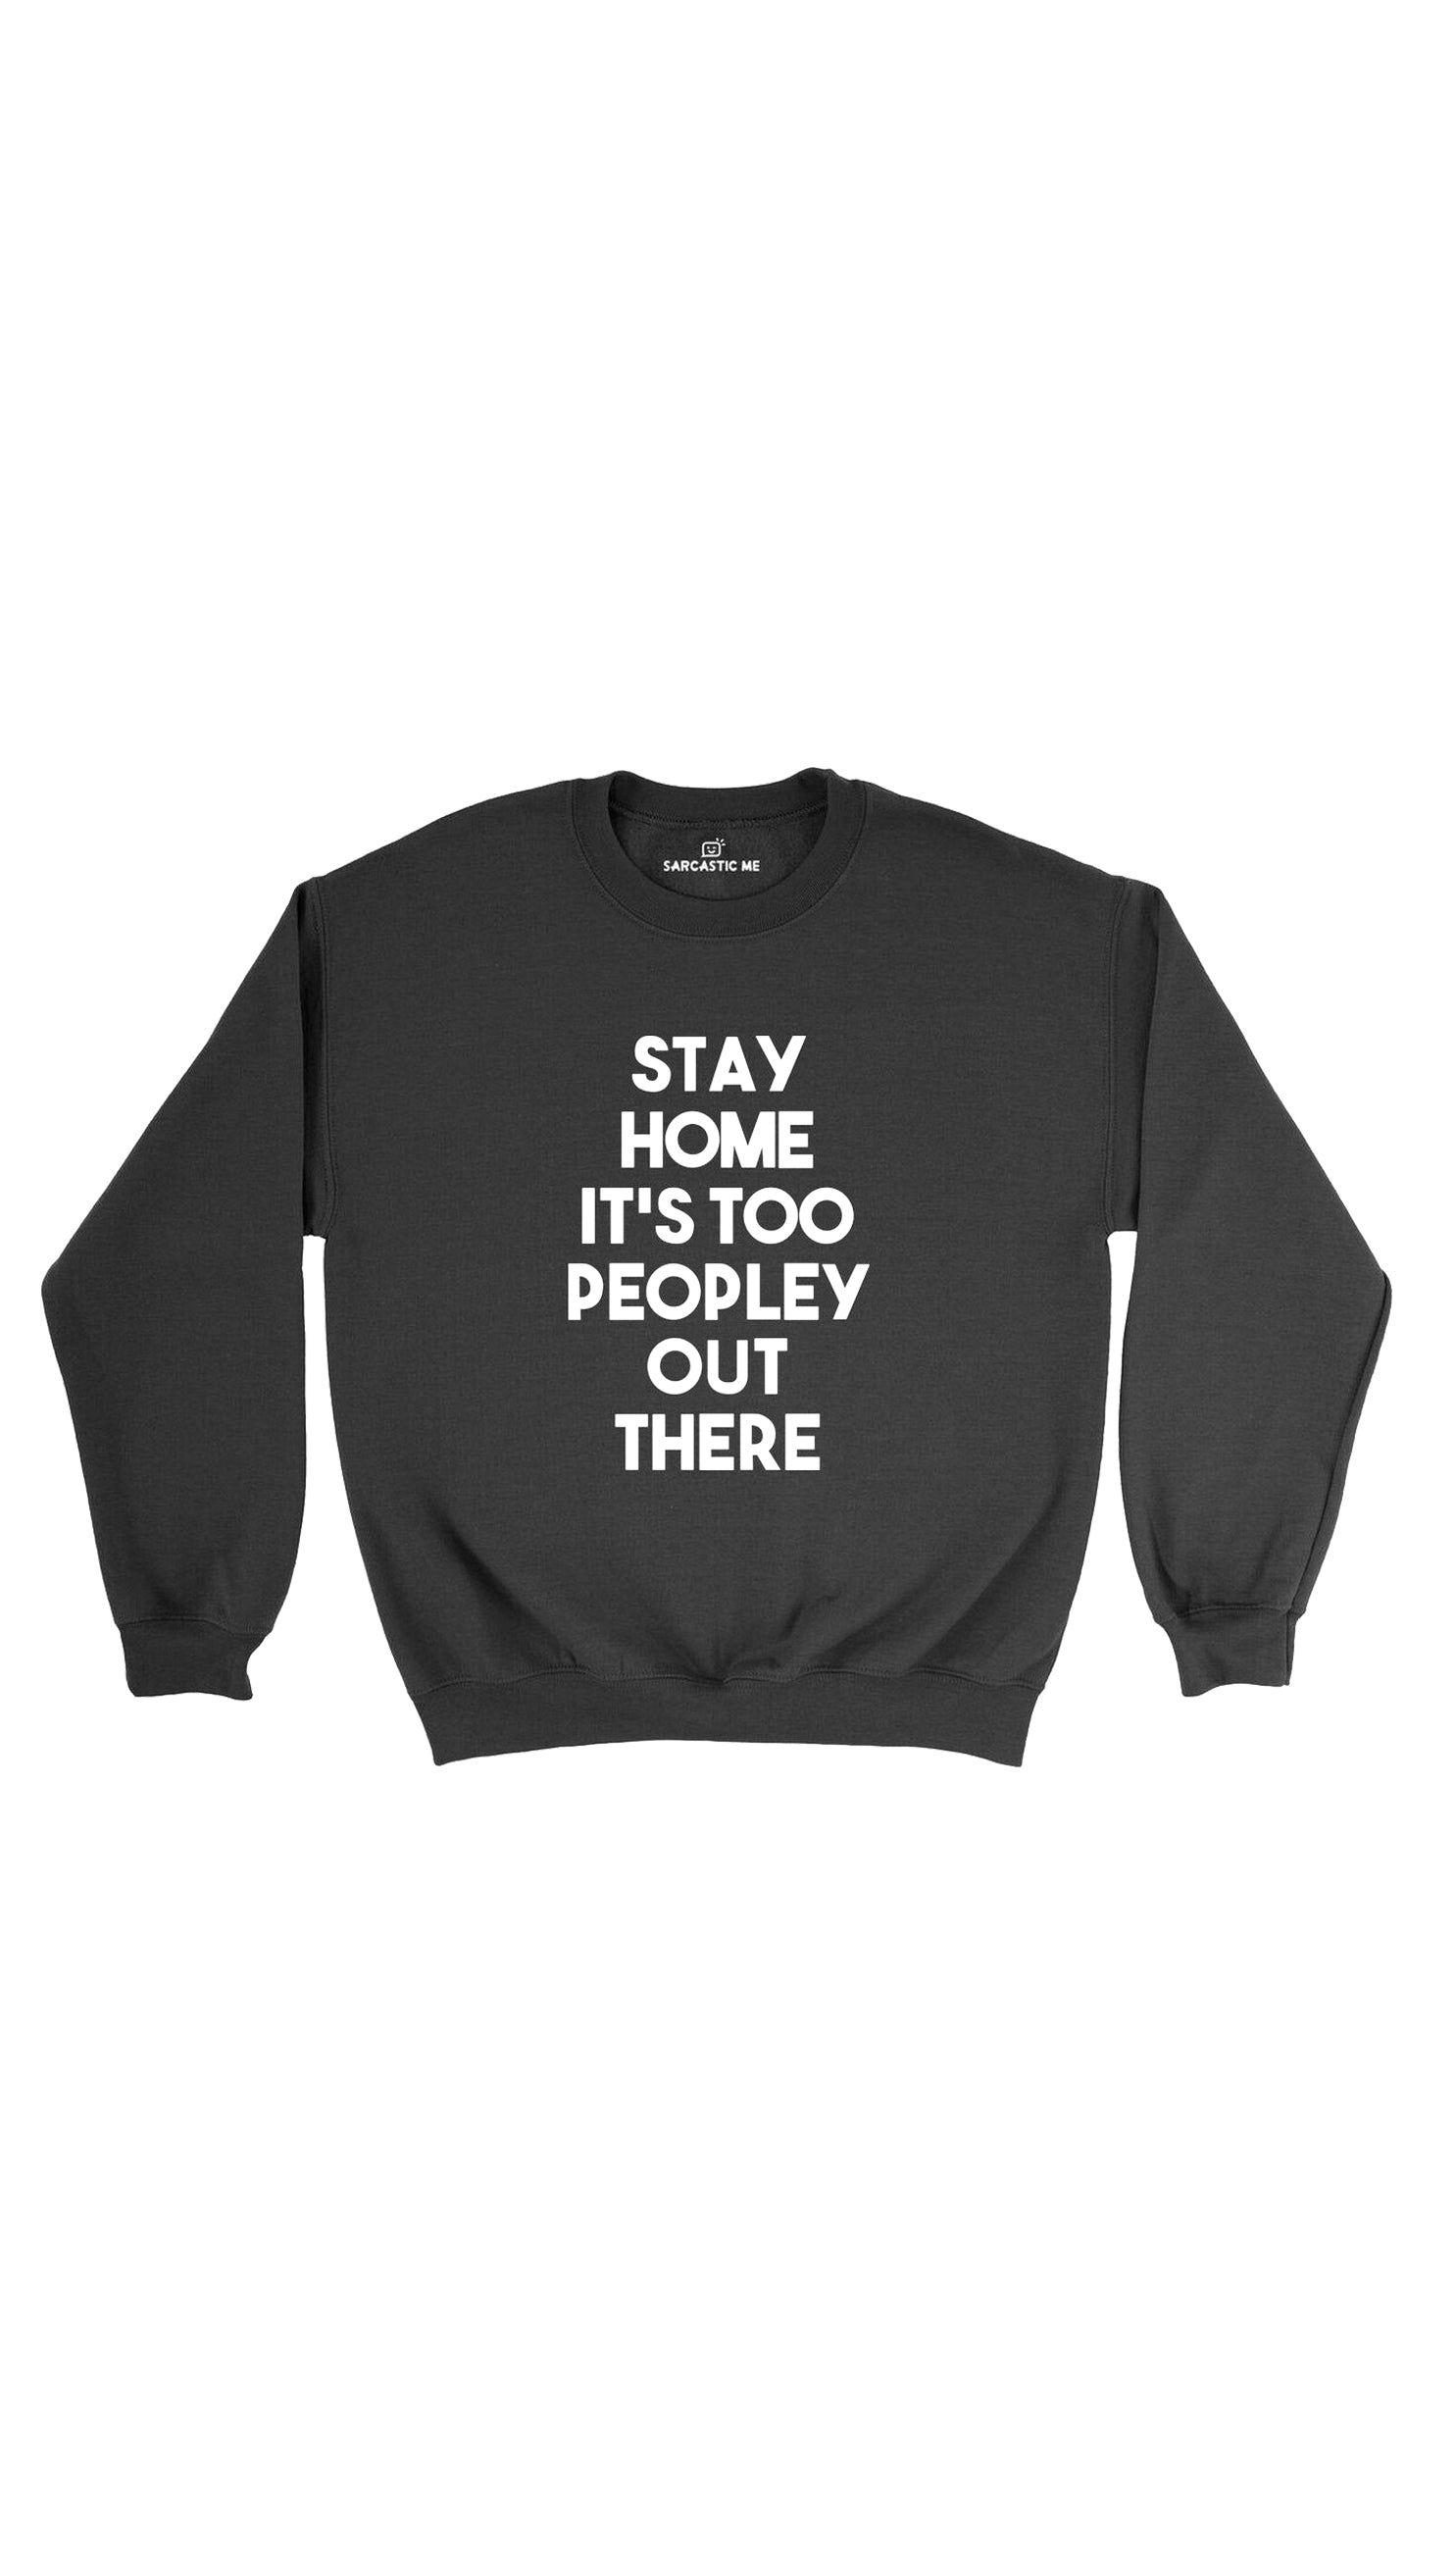 Stay Home It's Too Peopley Out There Black Unisex Sweatshirt | Sarcastic Me